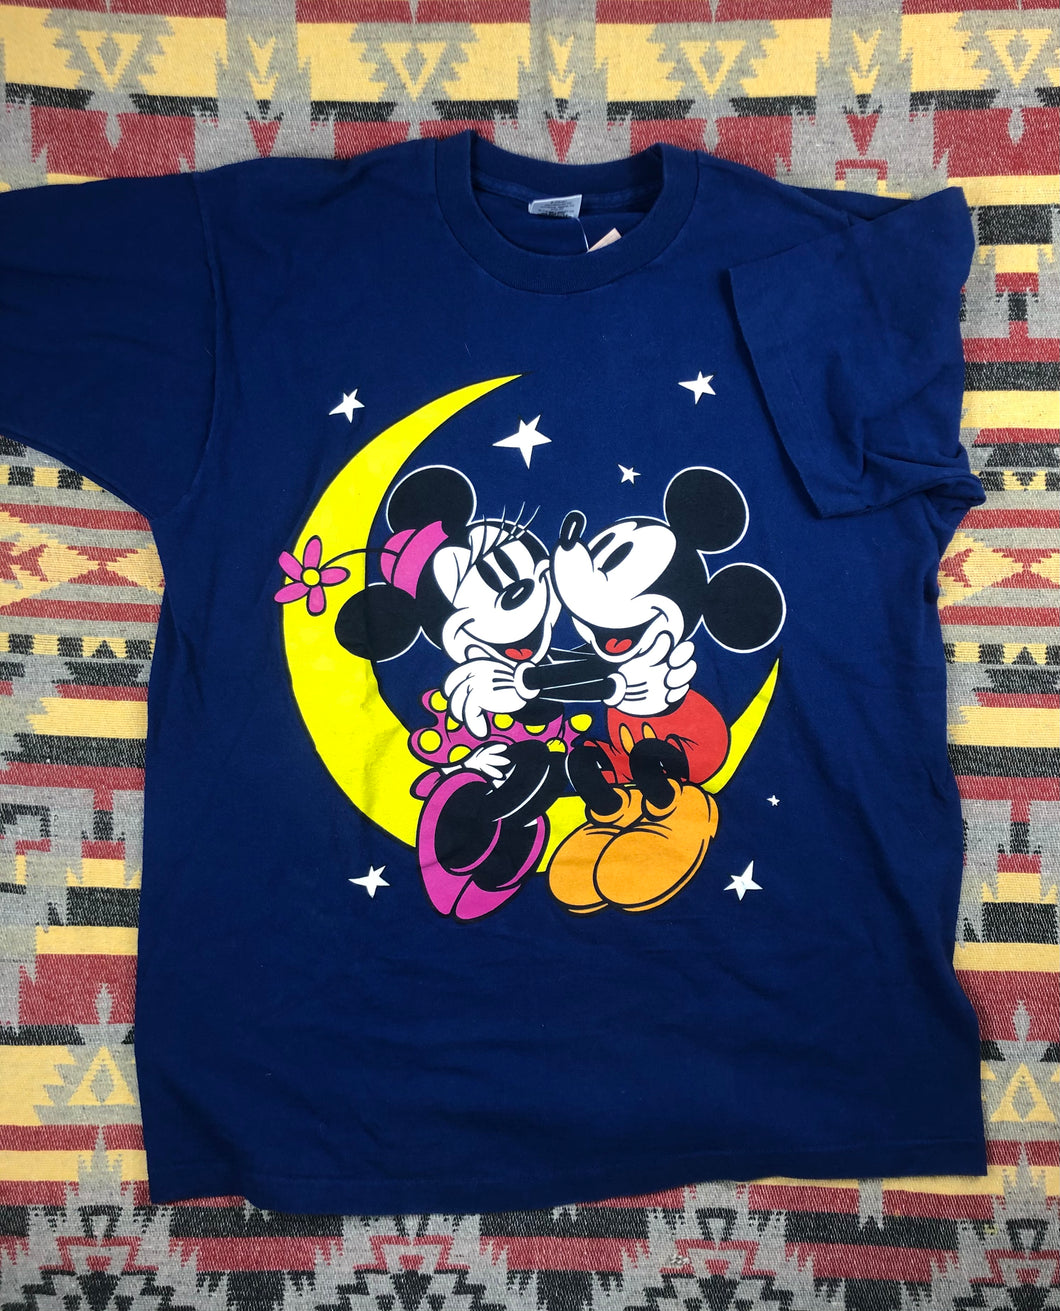 Vintage Mickey & Minnie Mouse shirt size XL